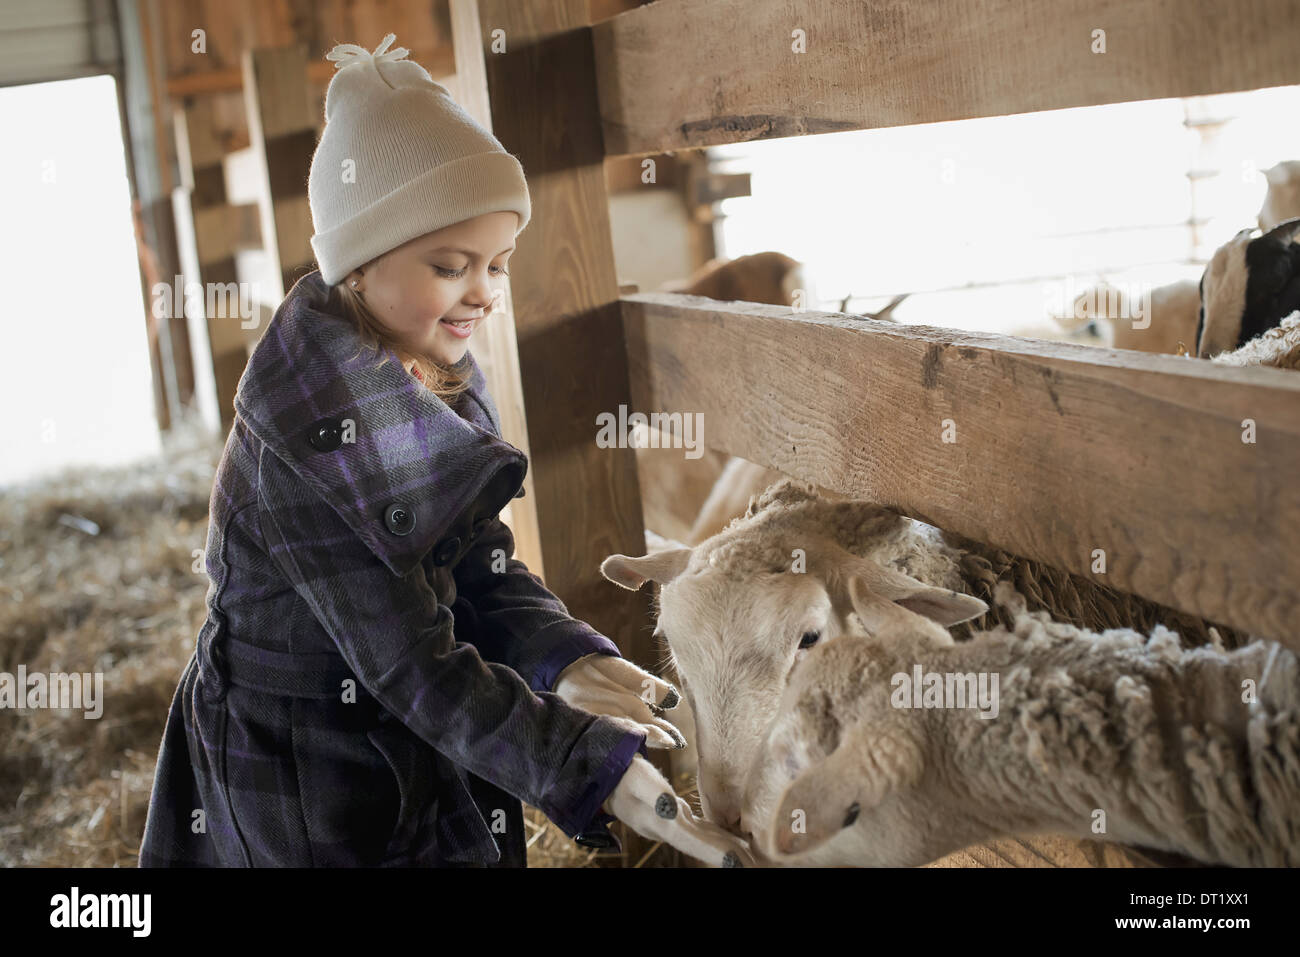 A child in the animal shed letting the sheep feed from her hand - Stock Image